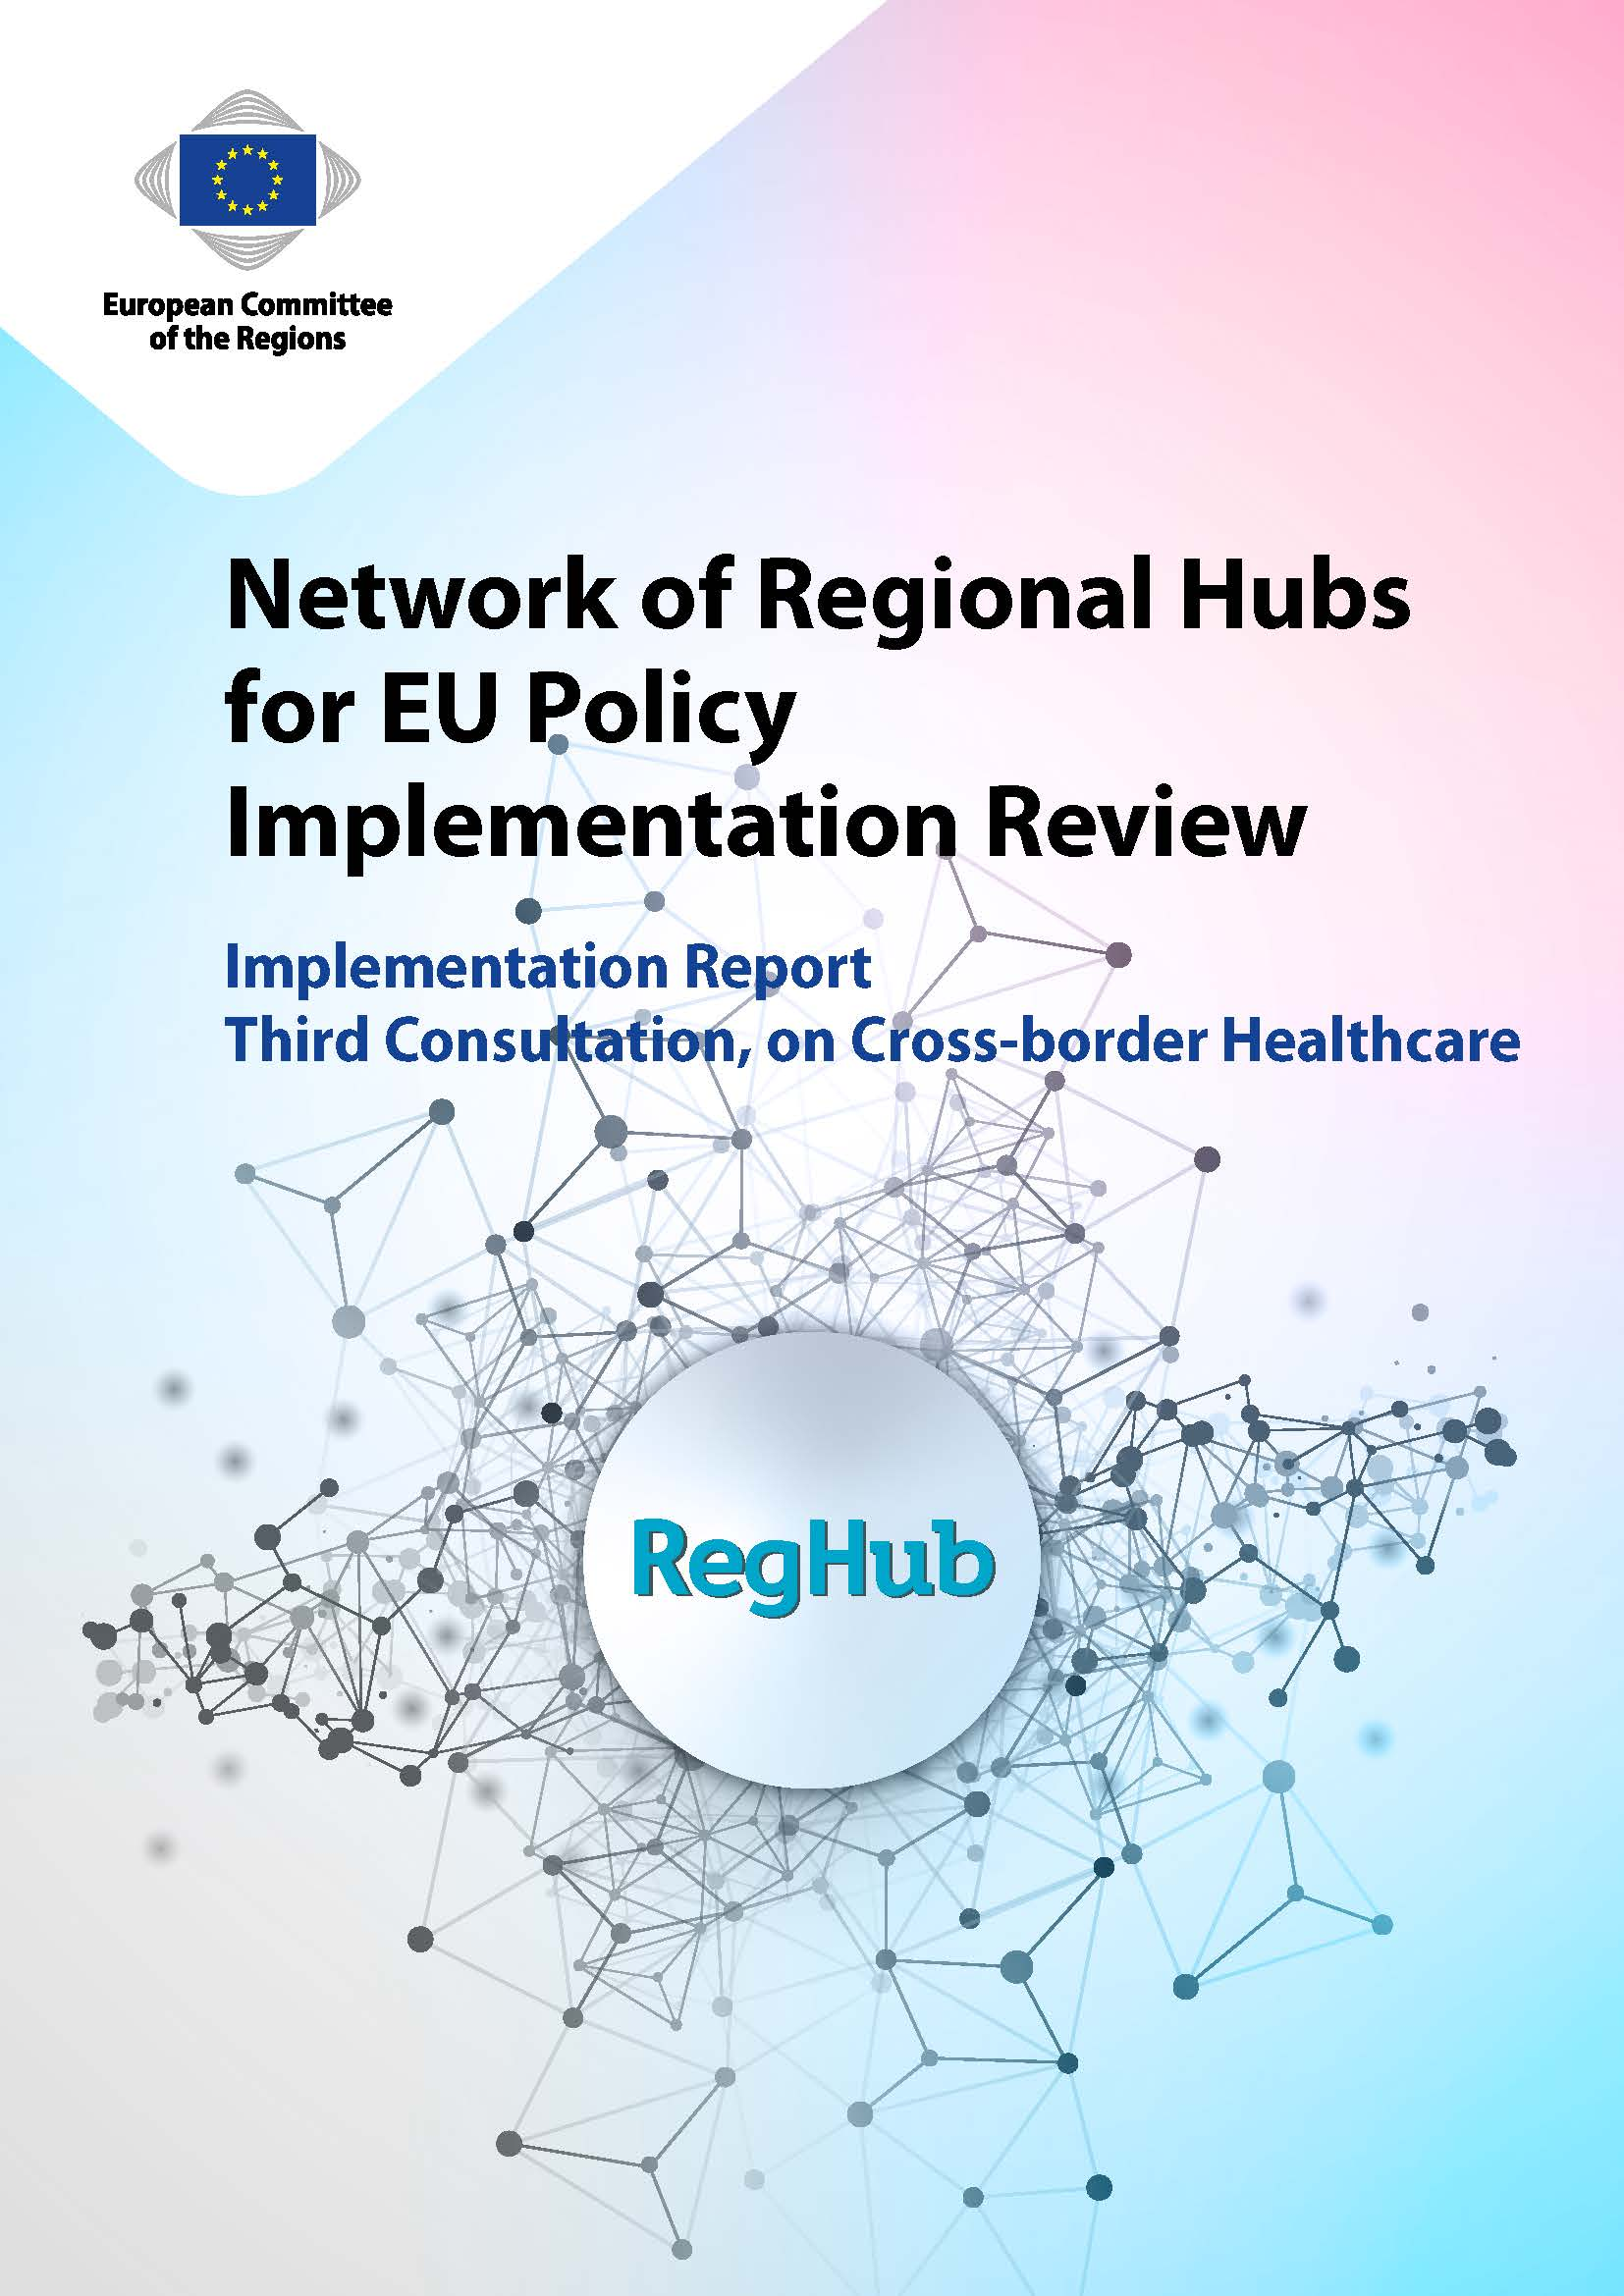 Implementation report on cross-border healthcare is published